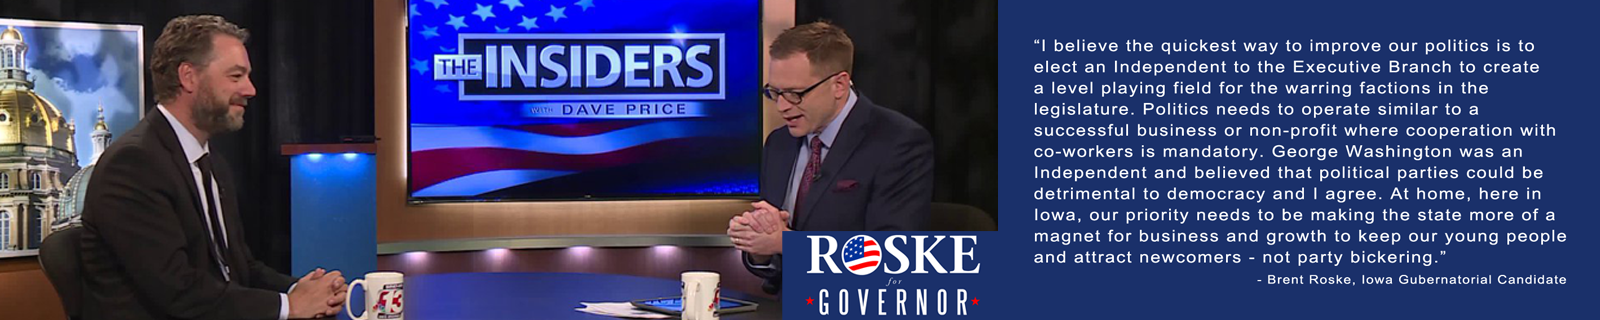 Brent Roske For Governor of Iowa